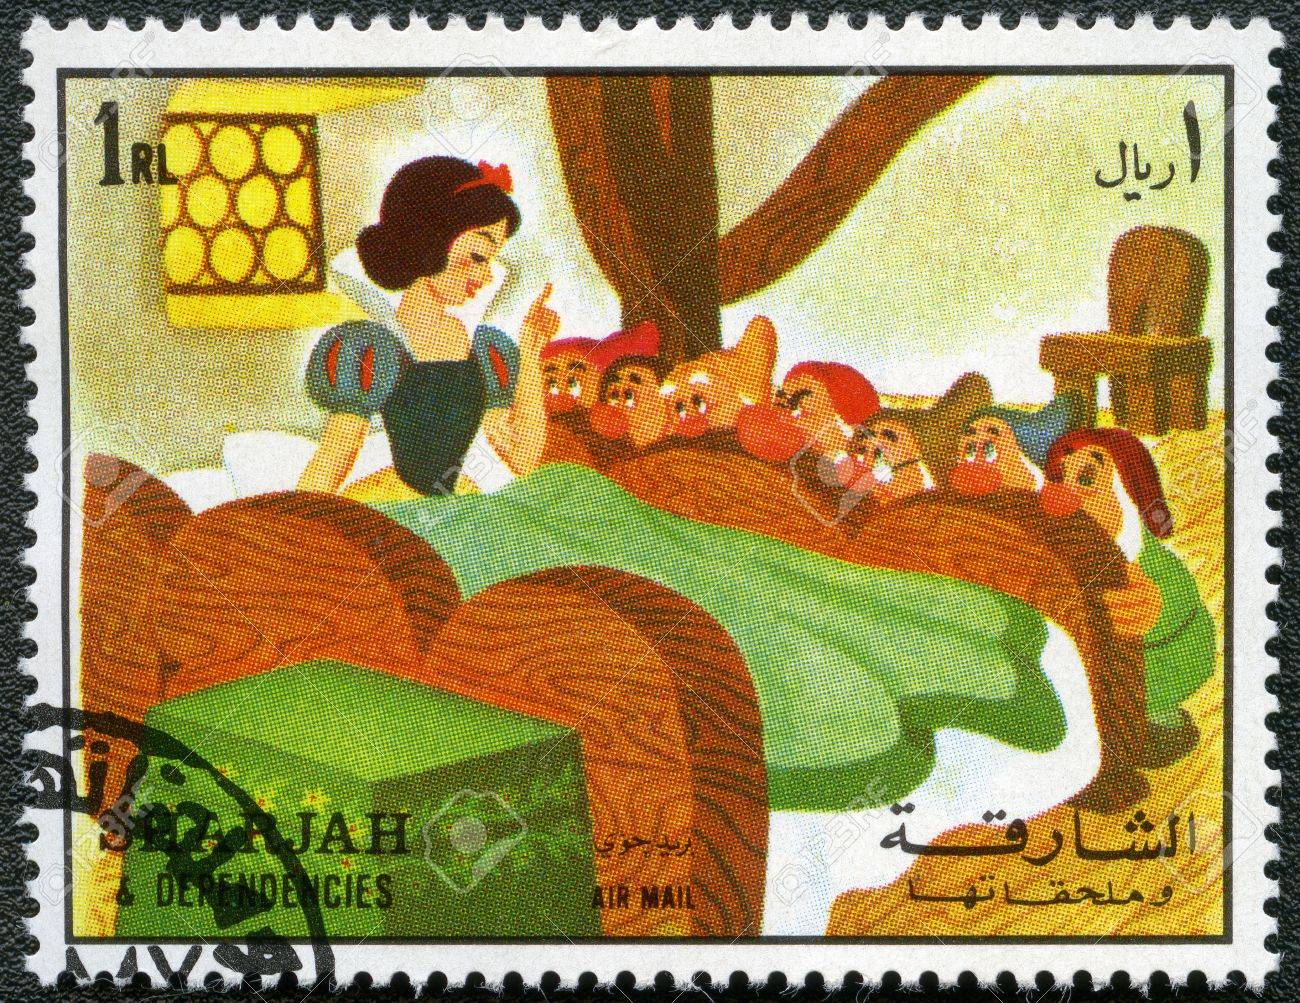 SHARJAH & DEPENDENCIES - CIRCA 1972: A stamp printed by Sharjah & Dependencies devoted fifty years of Walt Disney cartoon characters, shows Snow White and the seven dwarfs, series, circa 1972 Stock Photo - 12505421